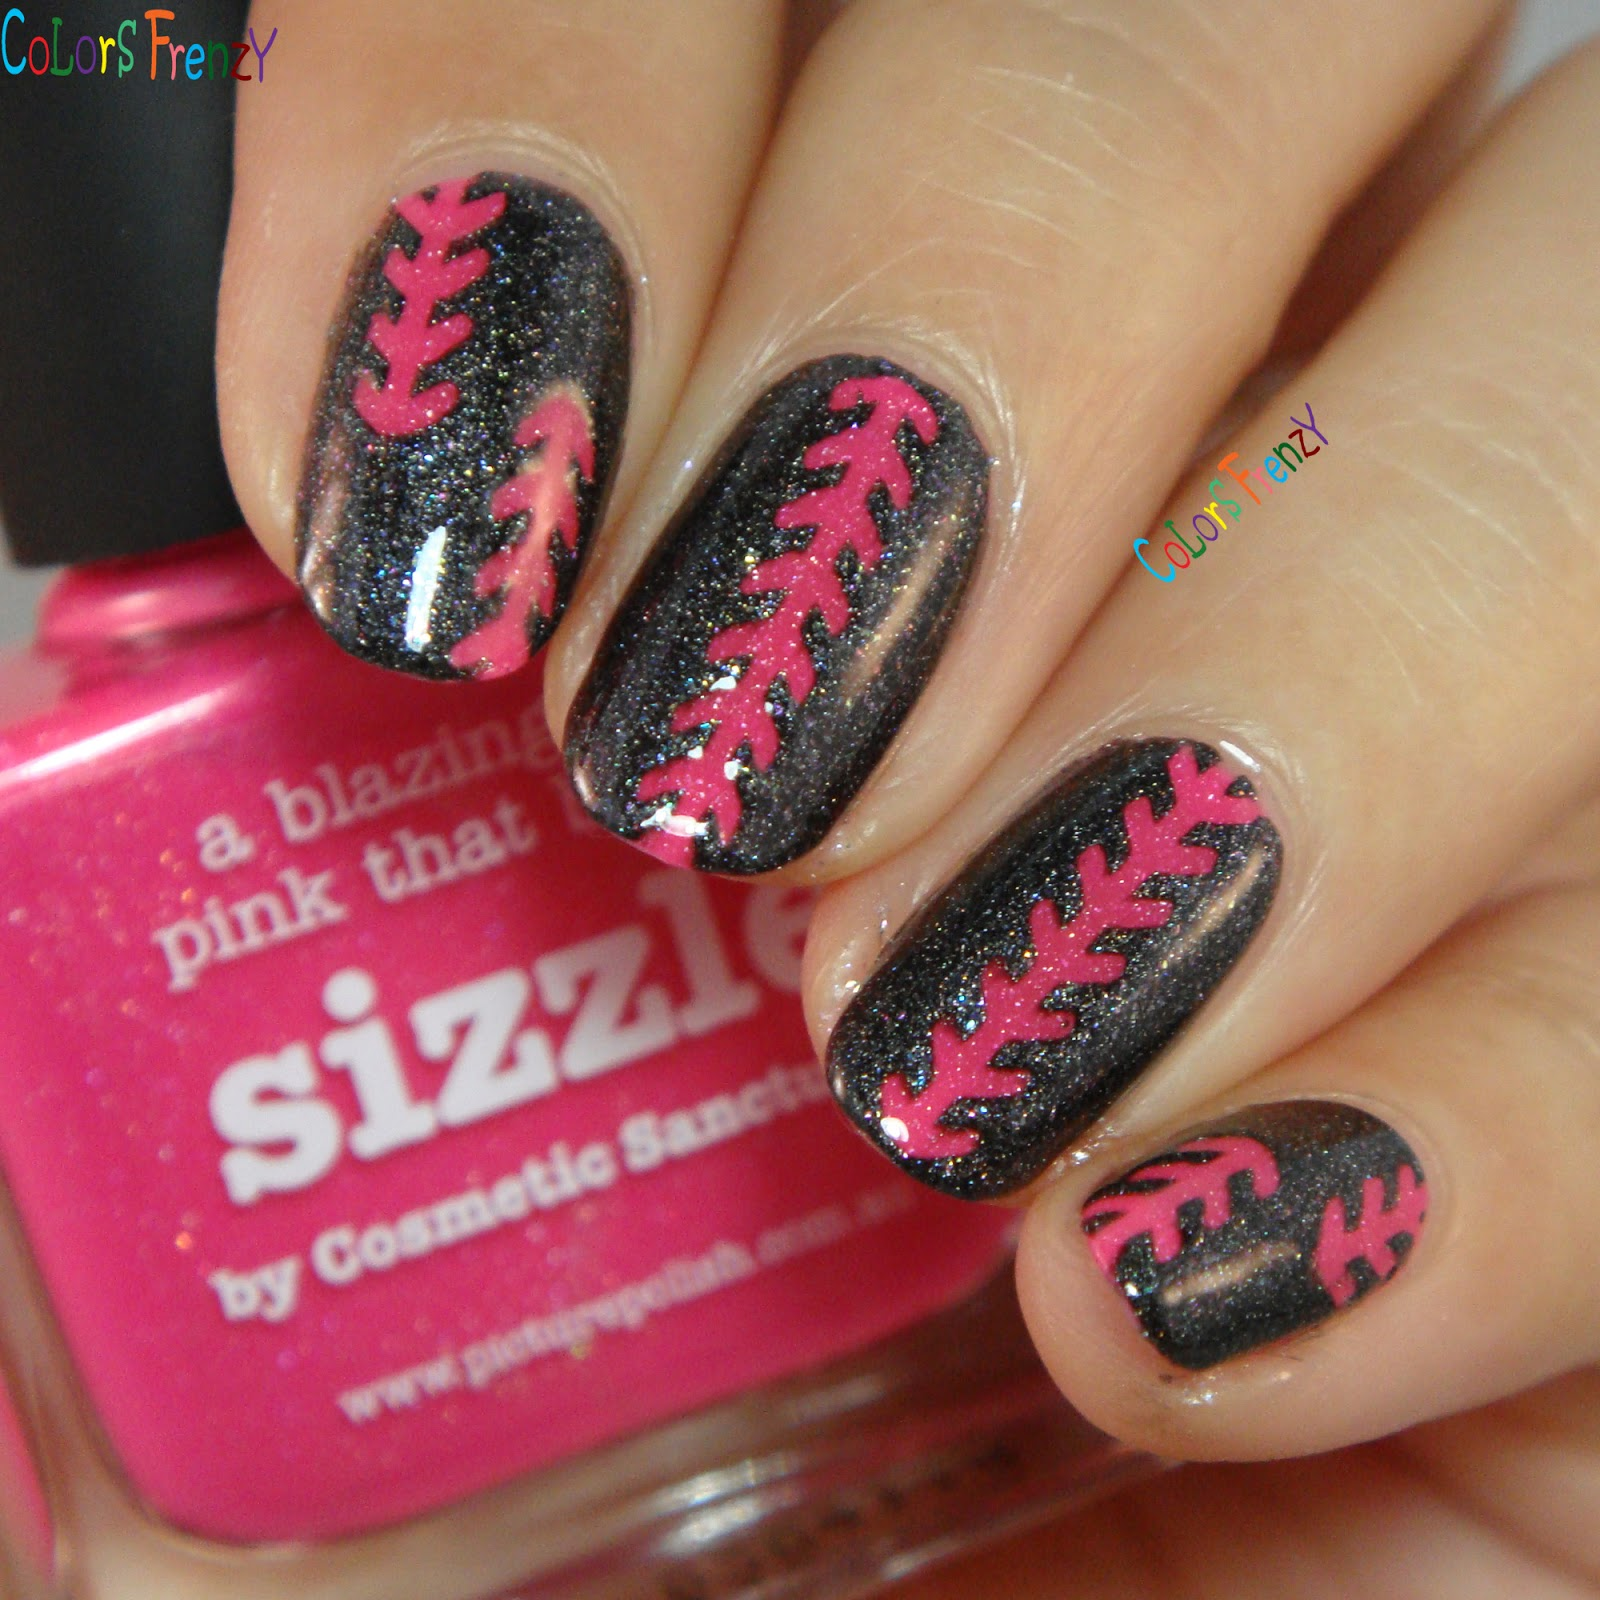 Colors frenzy picture polish sizzle swatches nail art w badass and heres a little nail art i did using stiching nail vinyls from beyond the nail and picture polish badass for my fright night trip prinsesfo Image collections